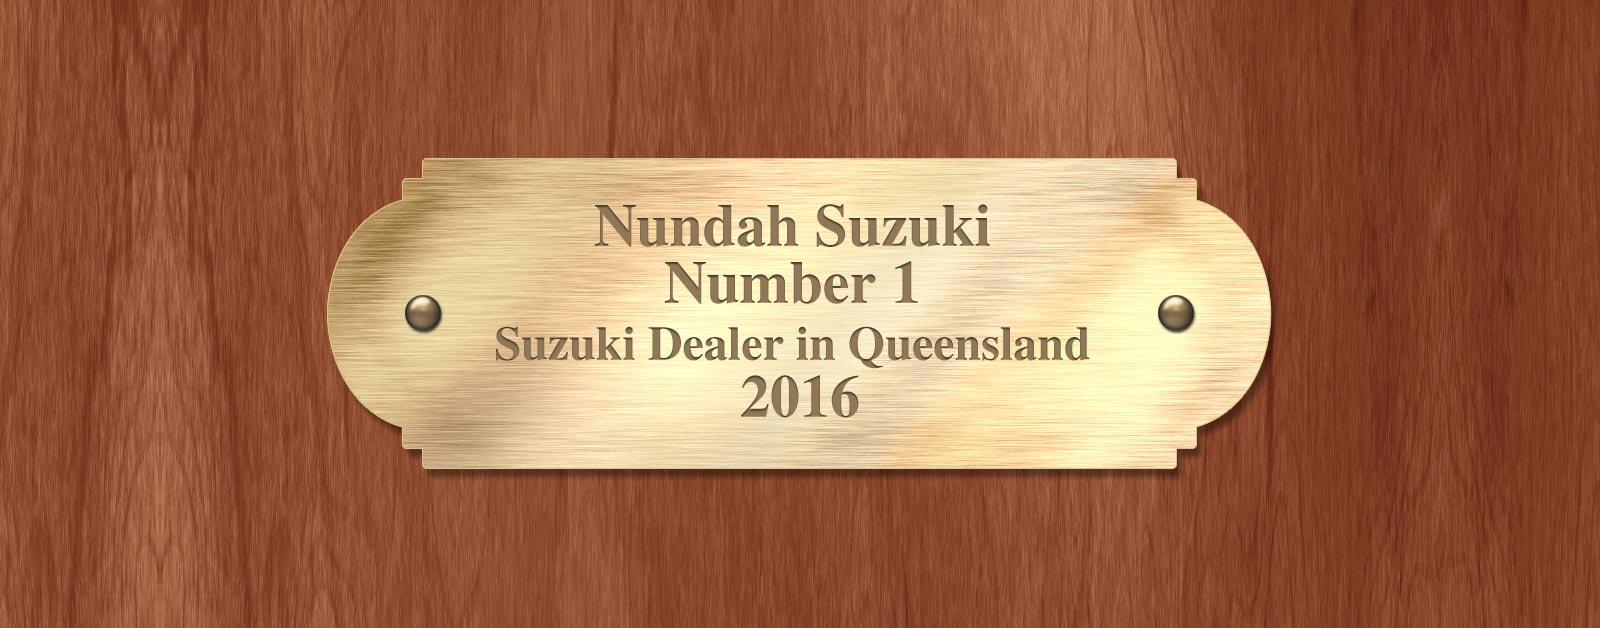 Nundah Suzuki Brisbane, the Number 1 Suzuki Dealer in Queensland 2016 written on a gold plaque.